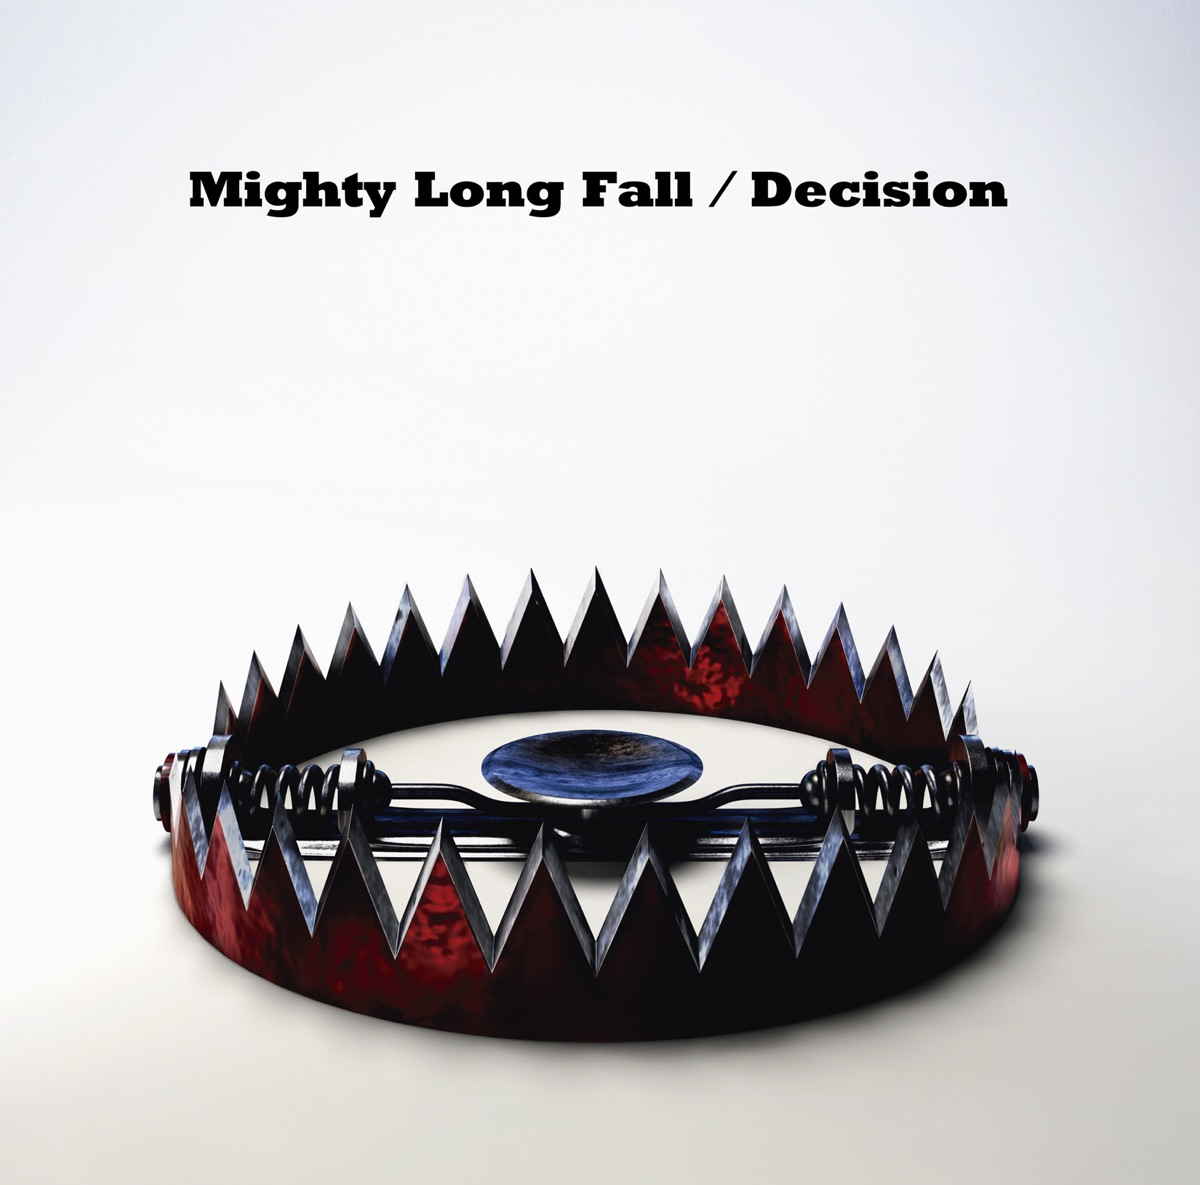 Mighty Long Fall / Decision - Single Album Cover by ONE OK ROCK